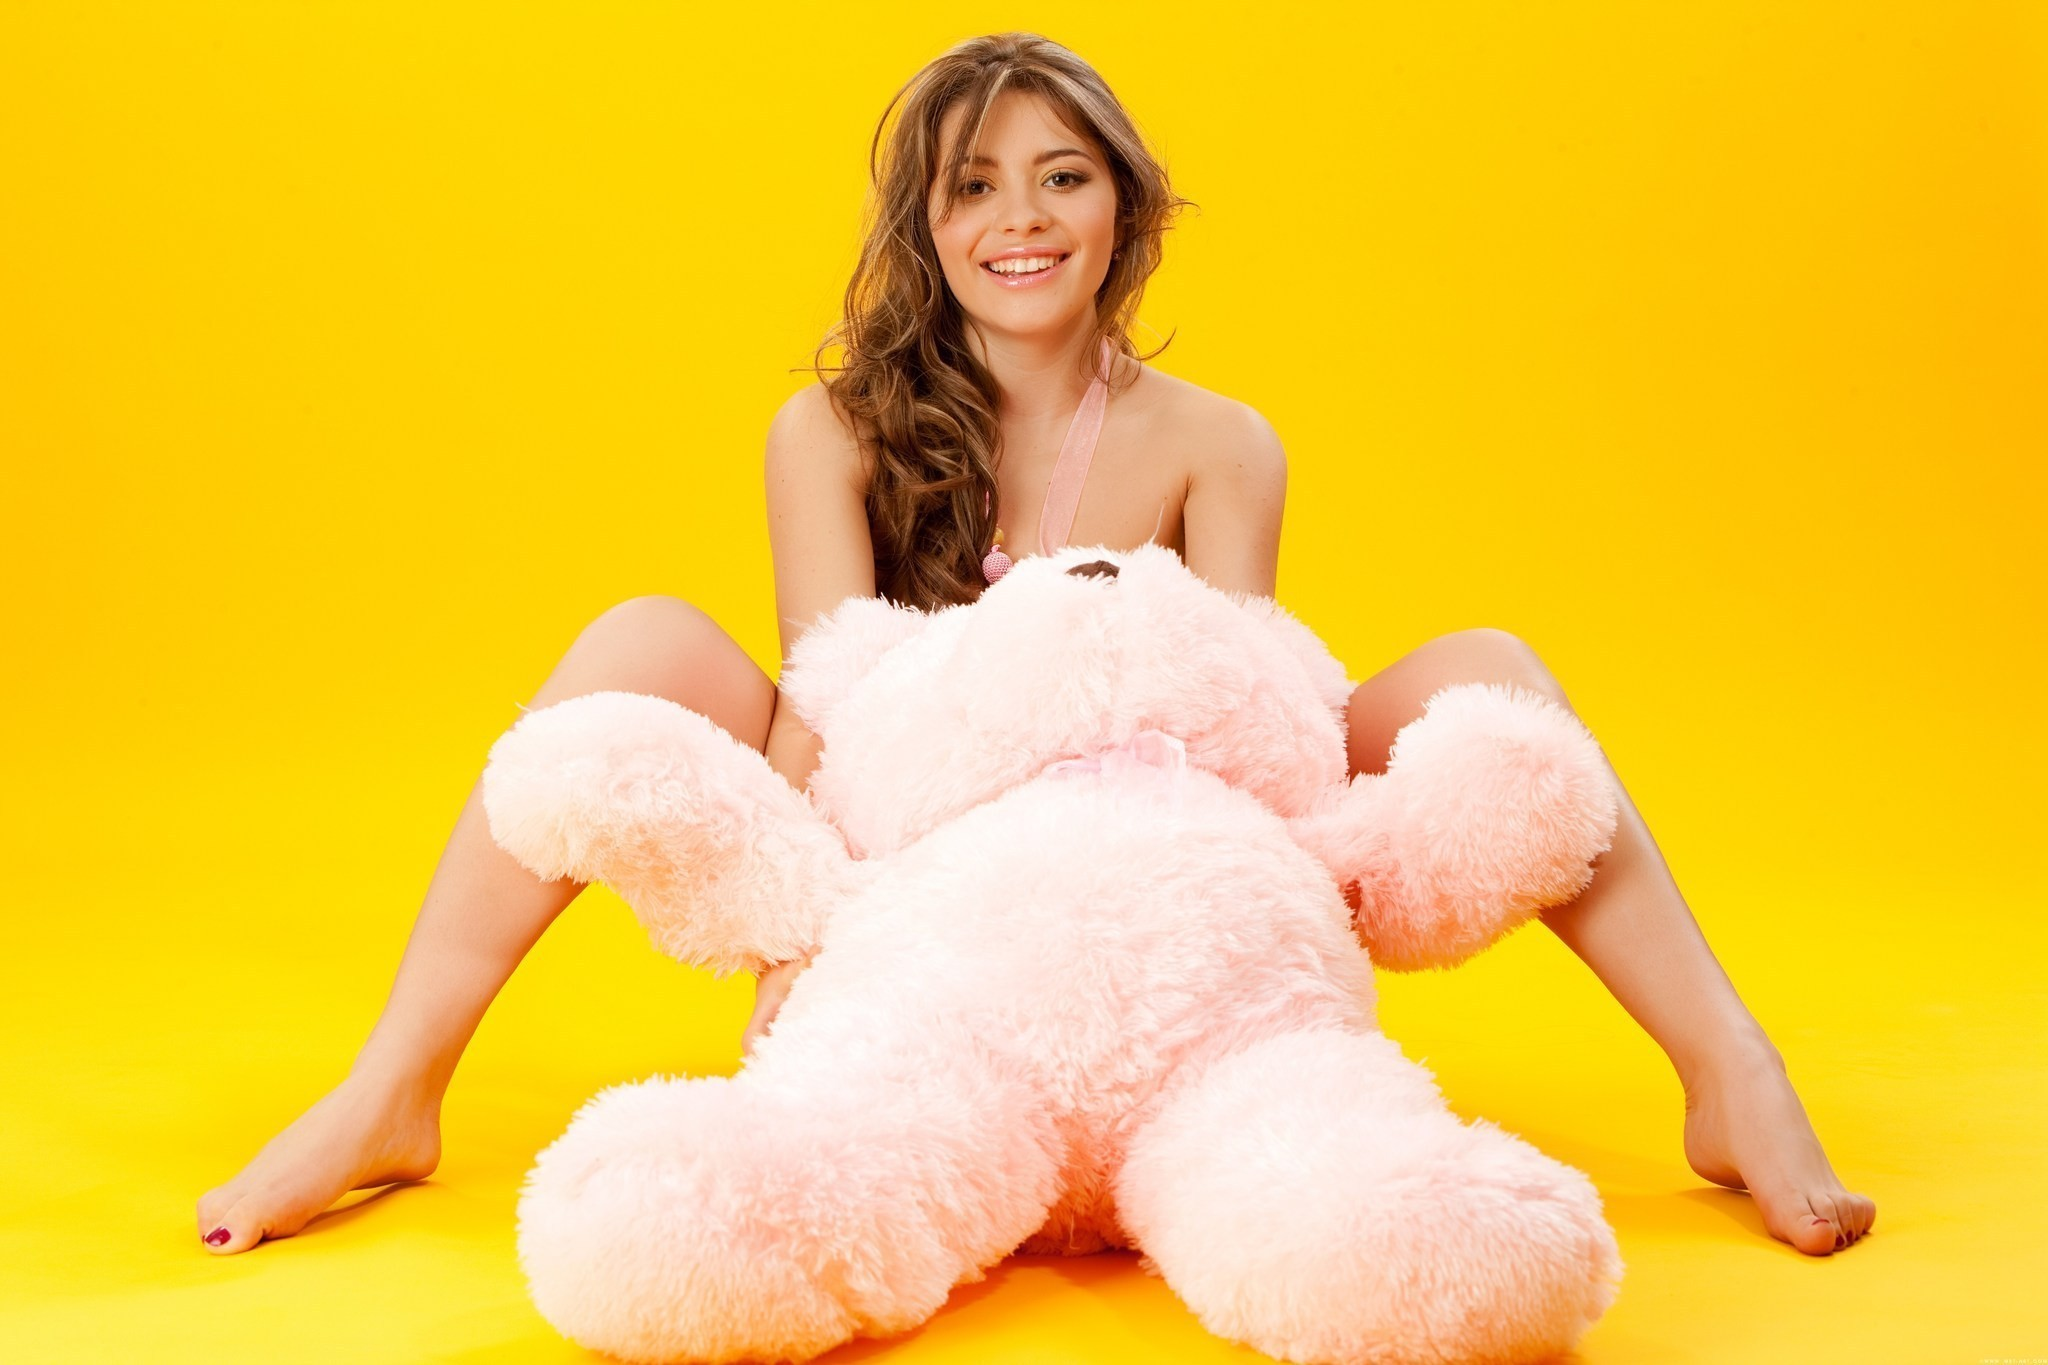 woman stuffed animals nude HD Wallpaper